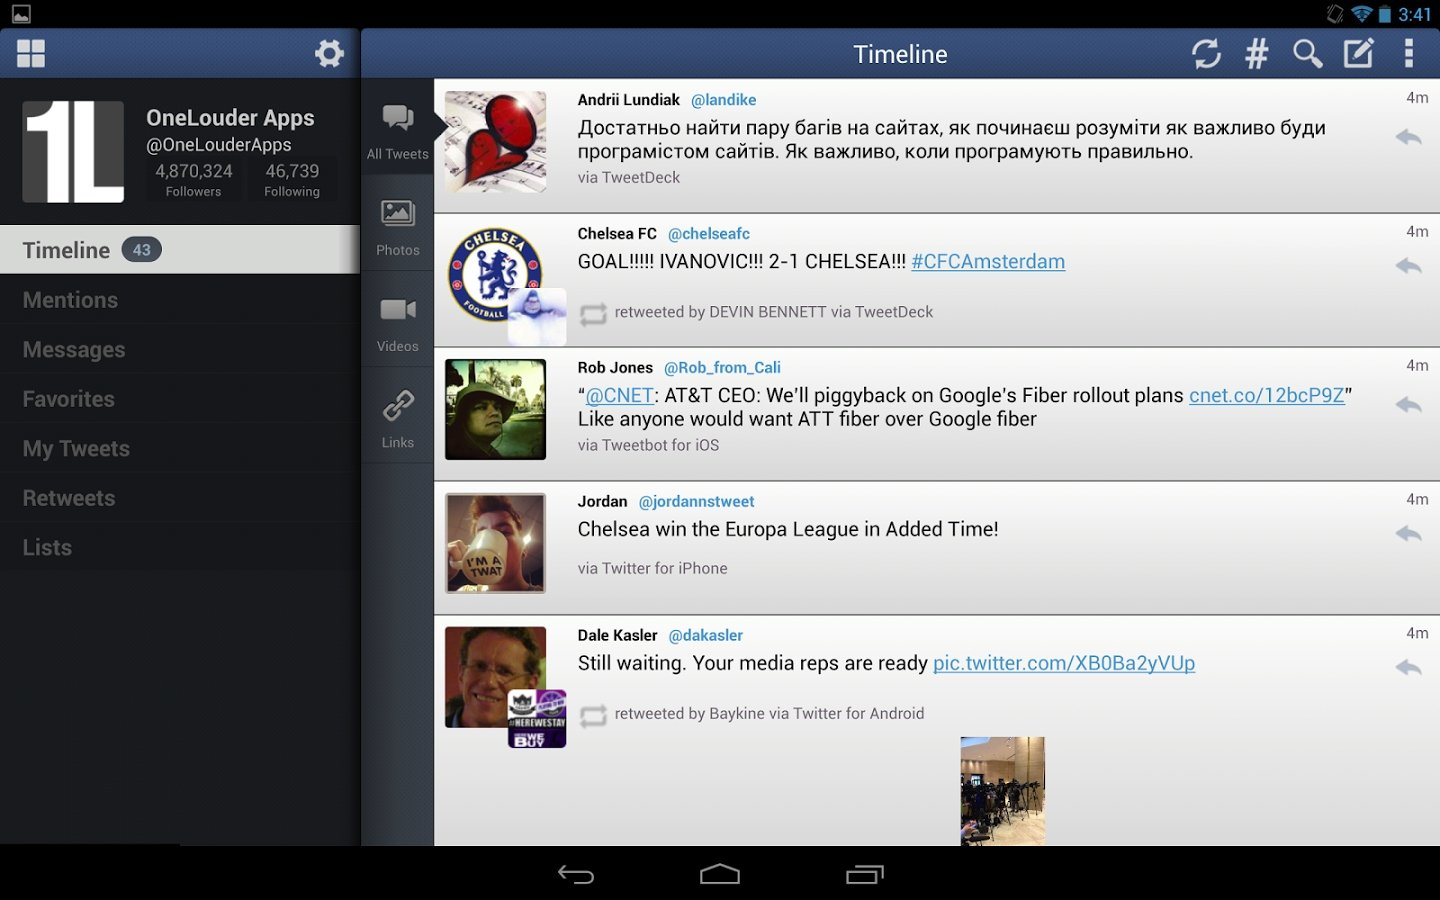 tweetcaster pro for android apk free download